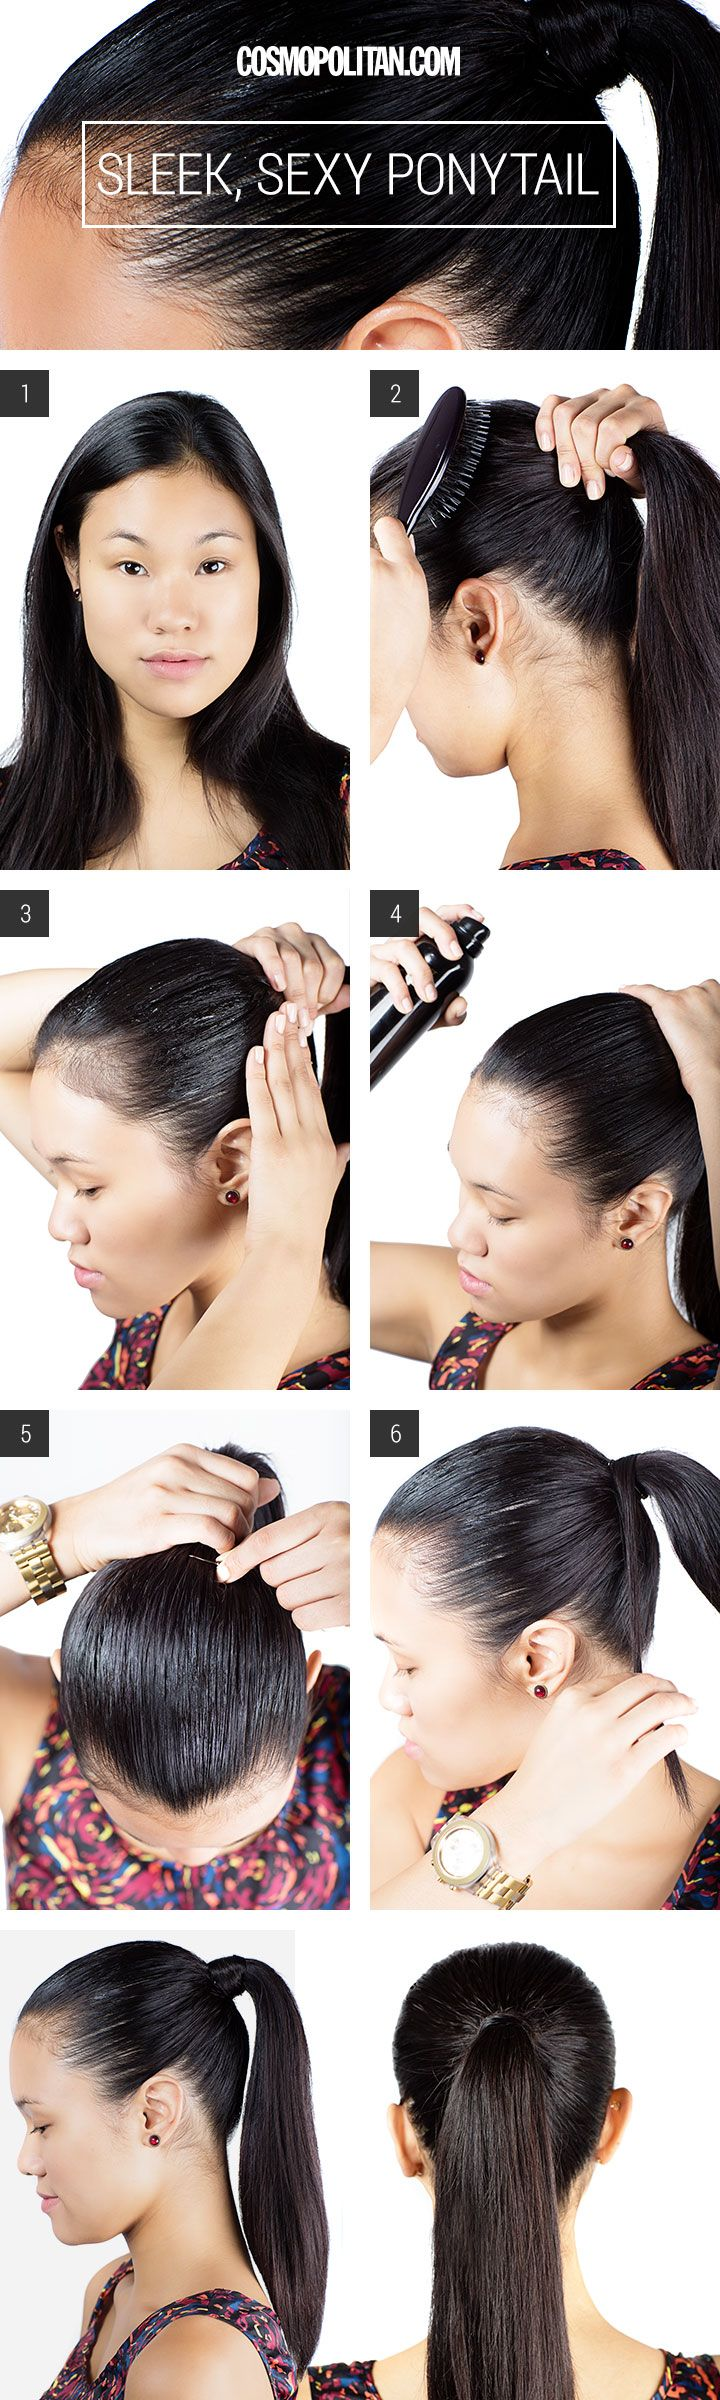 5 Minute Hairstyles For Girls 367 Best Images About Hairdo Idea On Pinterest Braided Bun